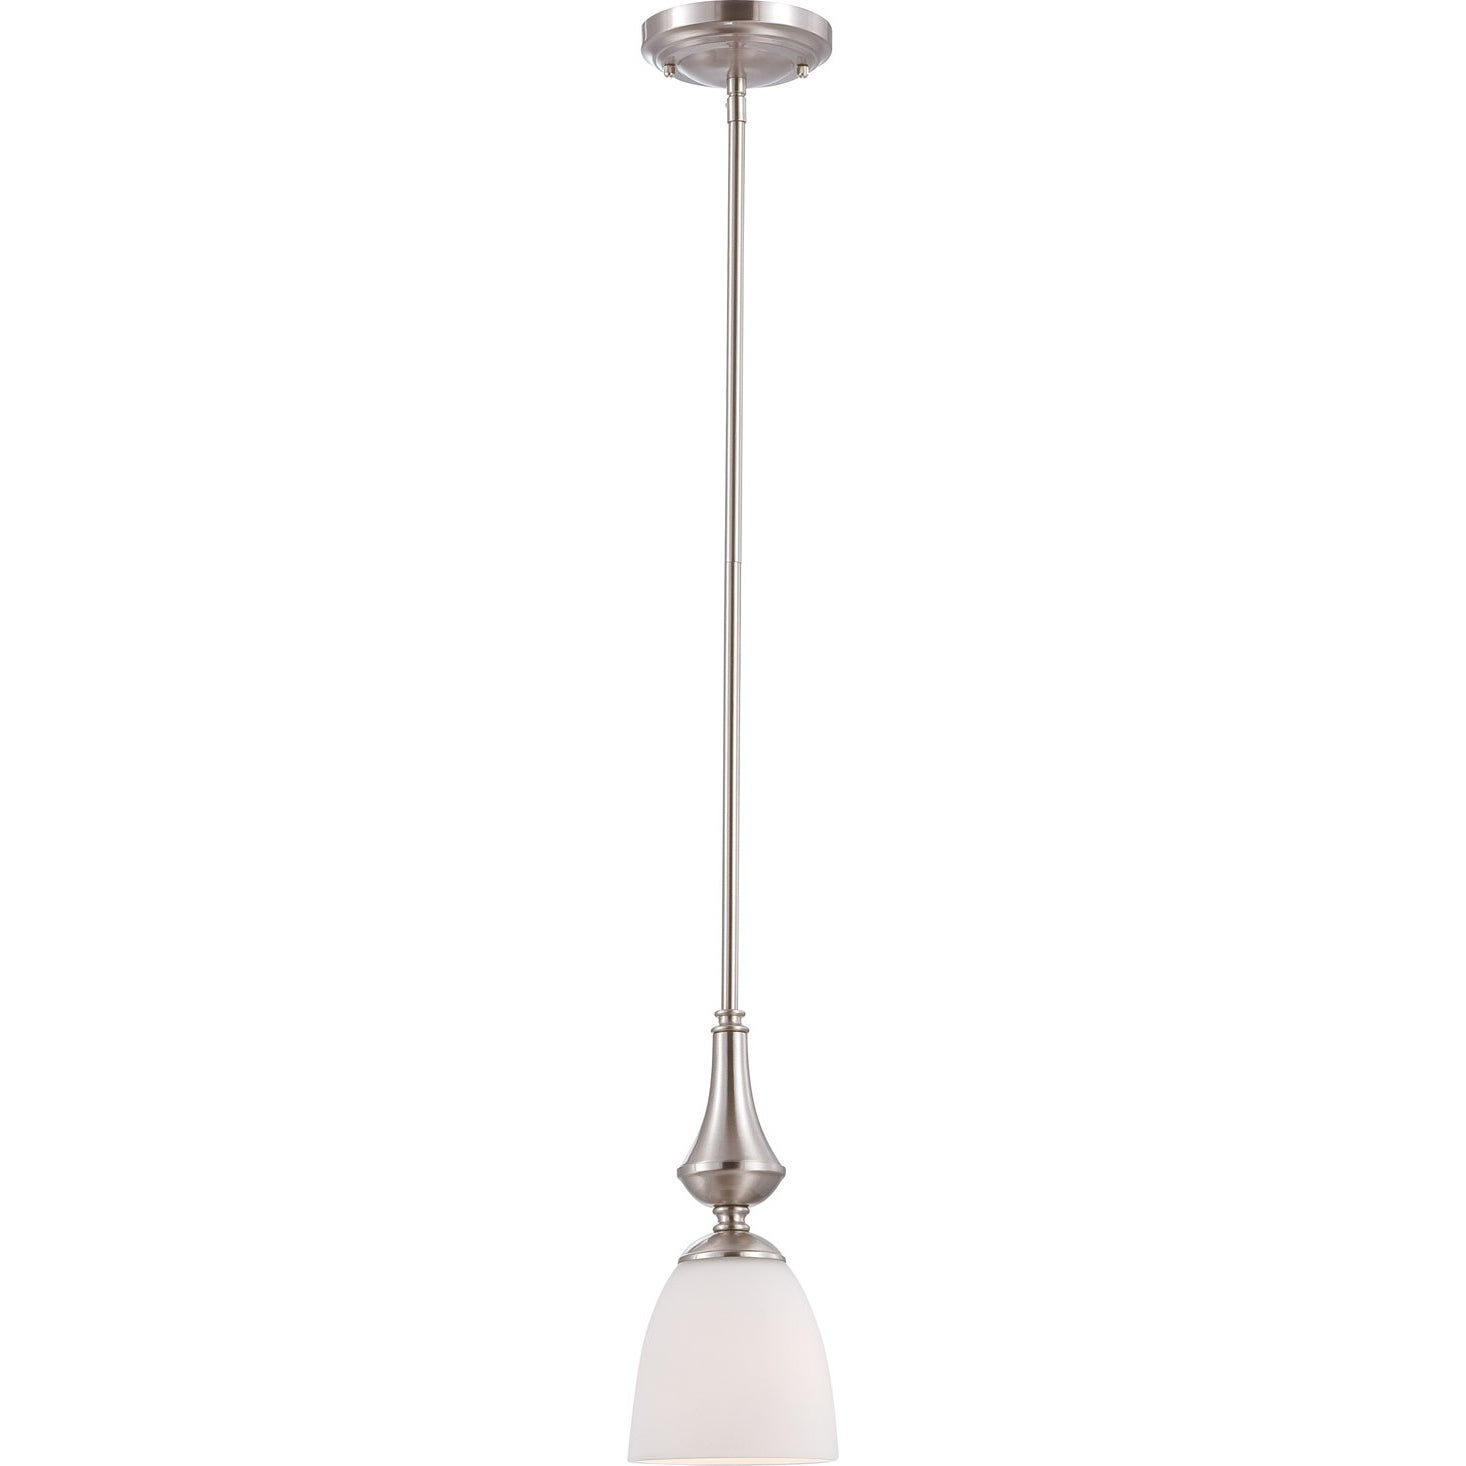 Nuvo 'Patton' 1-light Brushed Nickel Fluorescent Mini Pendant